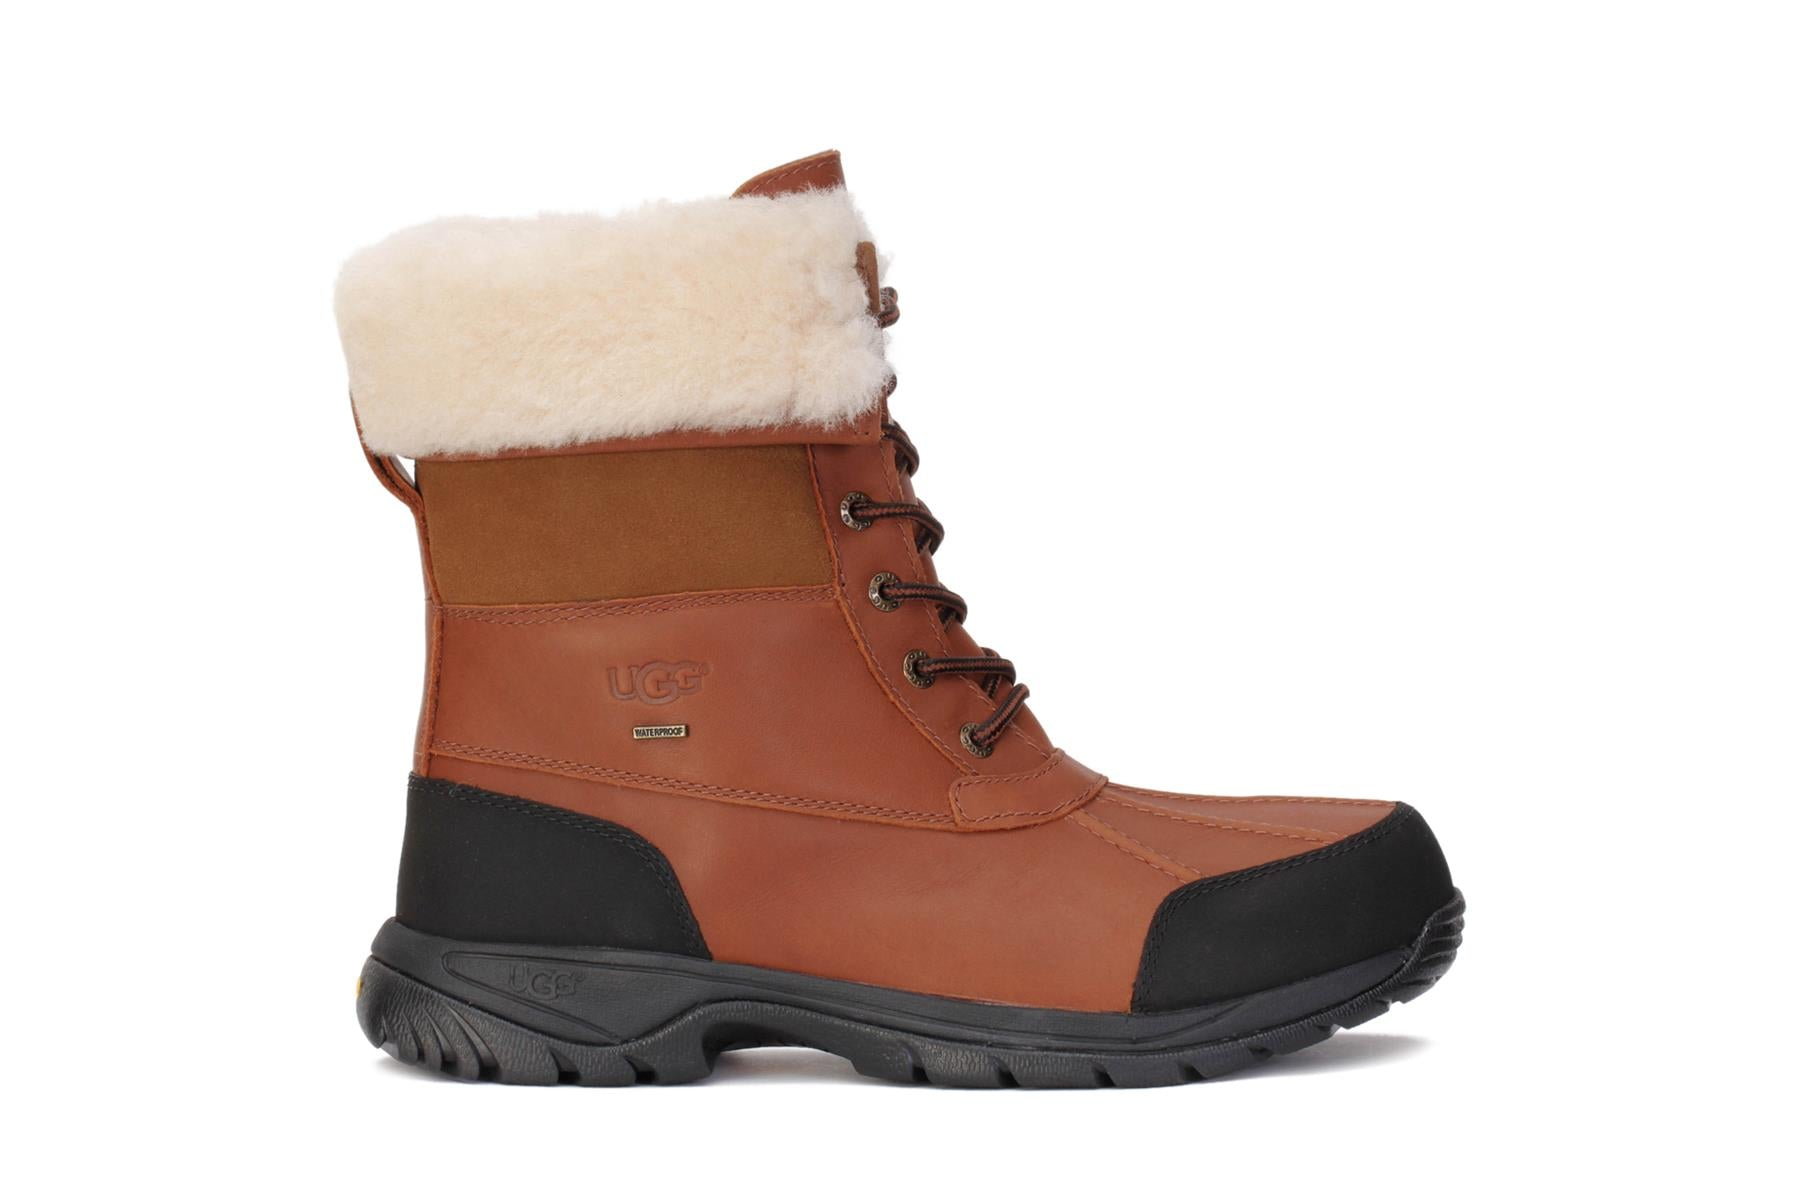 ugg-mens-winter-waterproof-boots-butte-worchester-main